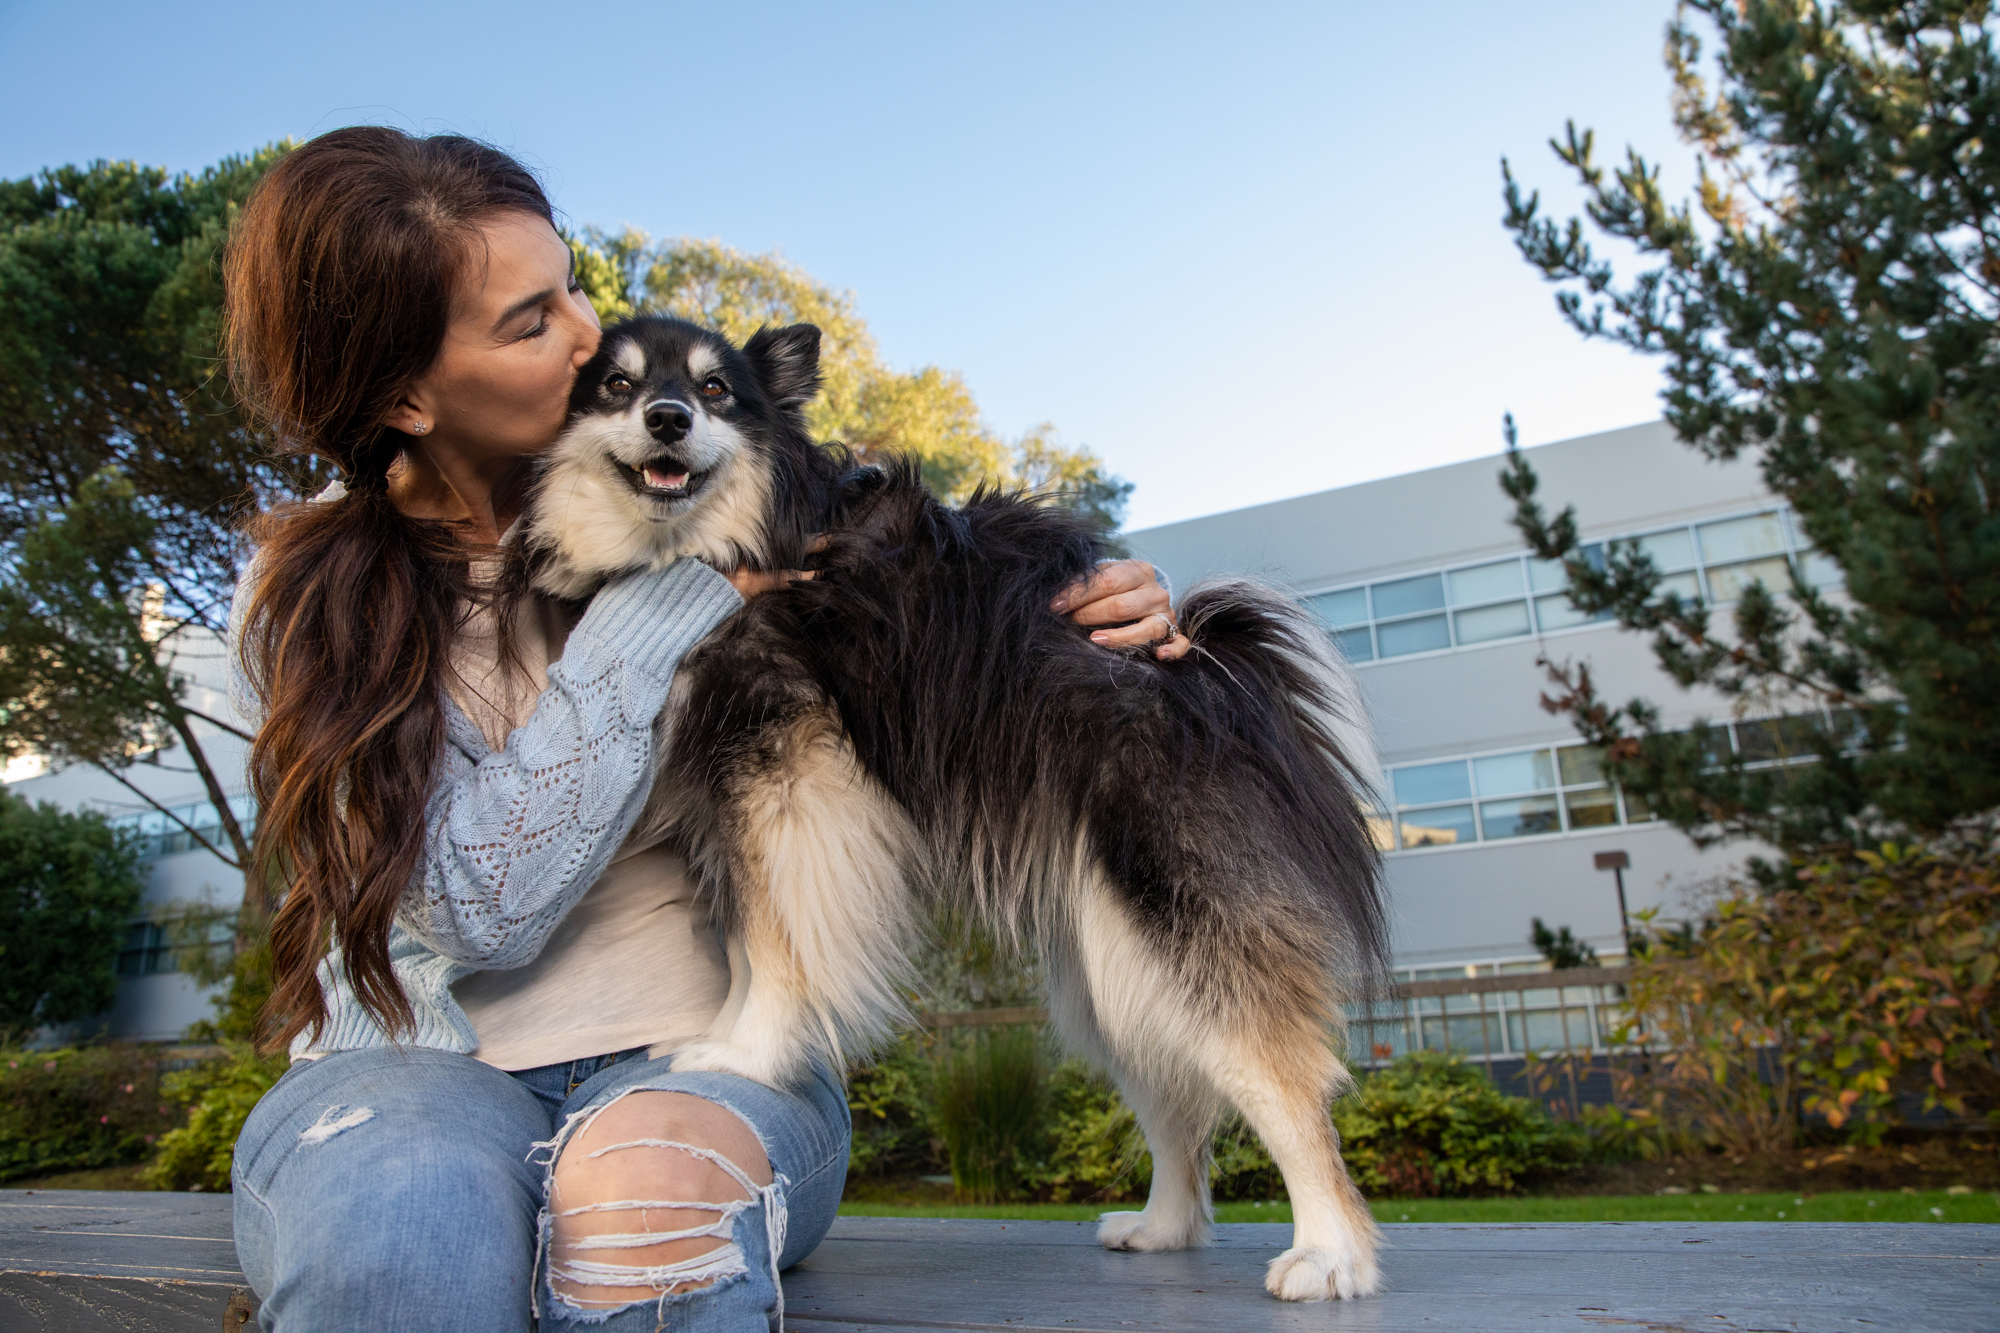 Mark Rogers photographs a shaggy dog getting a big kiss from its human for Healthy Paws Pet Insurance